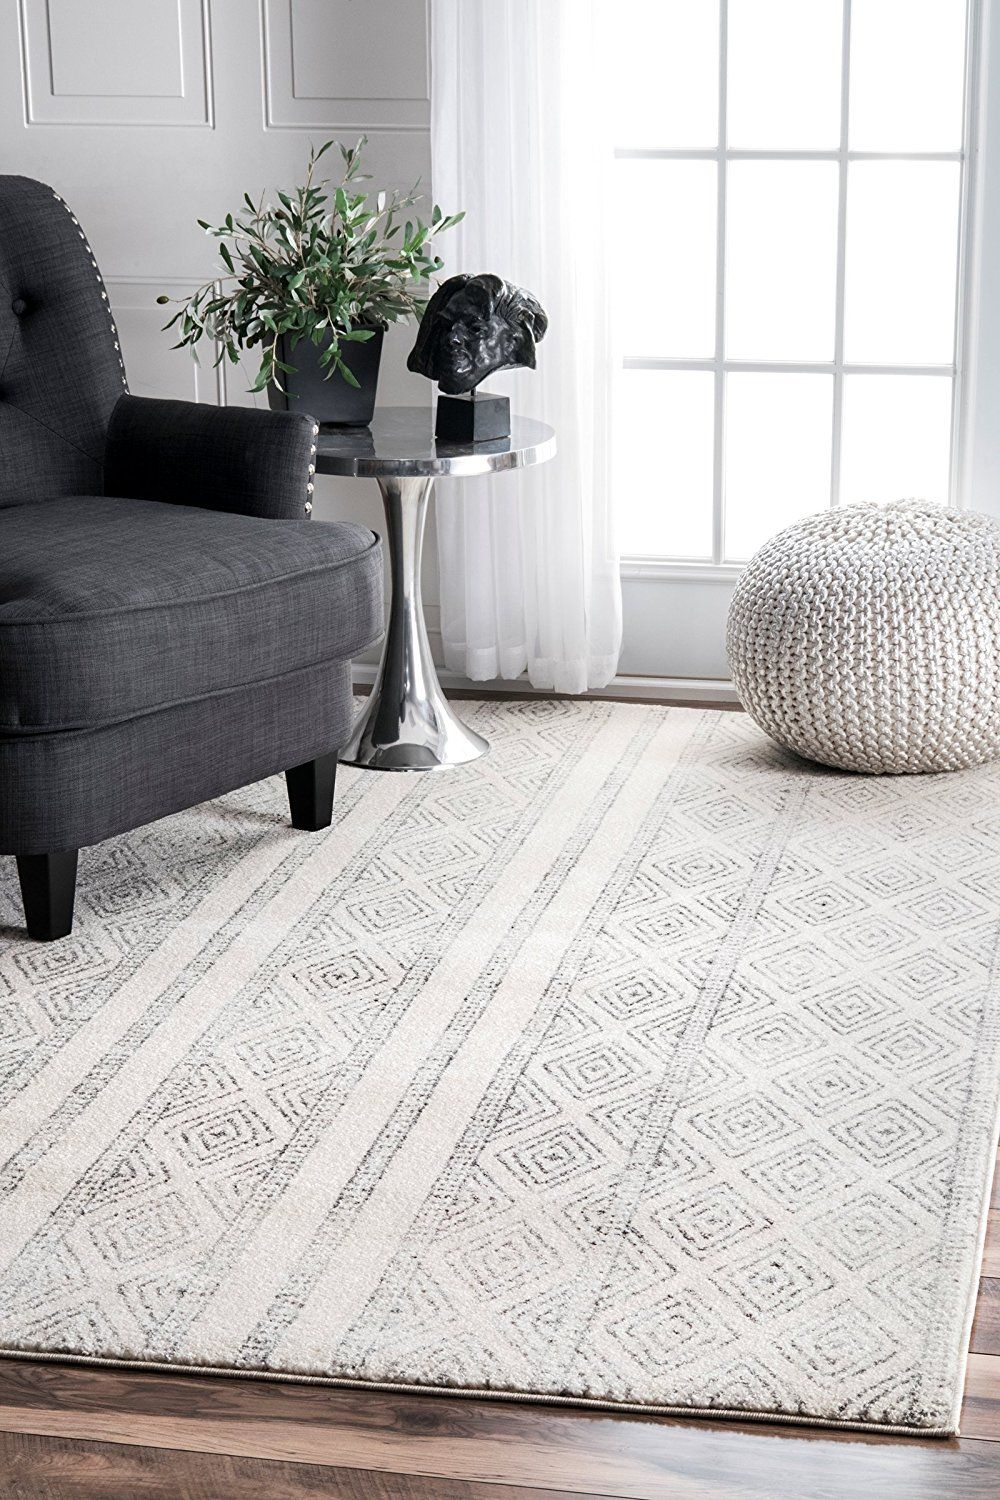 Helpful Tips To Help You Find The Perfect Farmhouse Style Rug For Your Home Grey Geometric Rug Grey Area Rug Rugs In Living Room